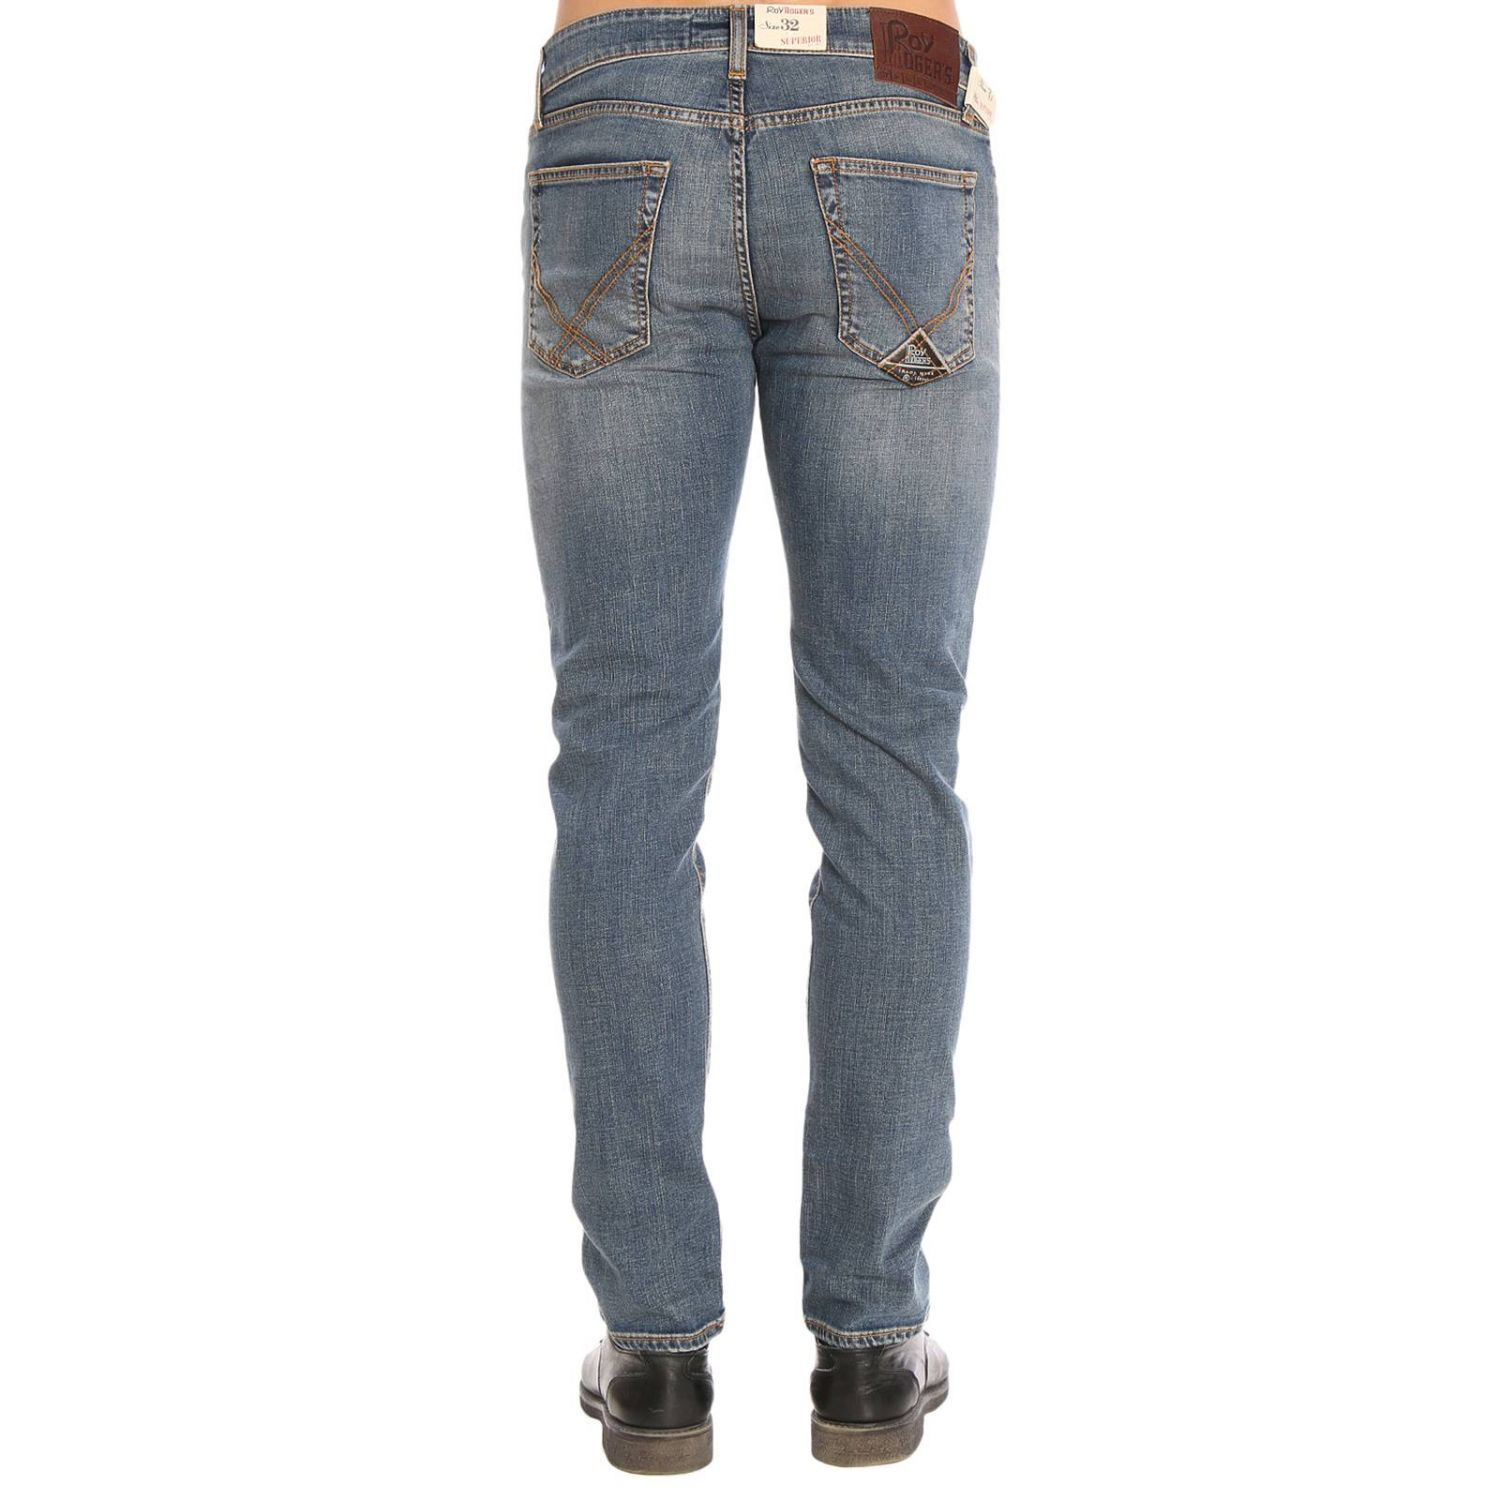 Jeans hombre Roy Rogers azul oscuro 3